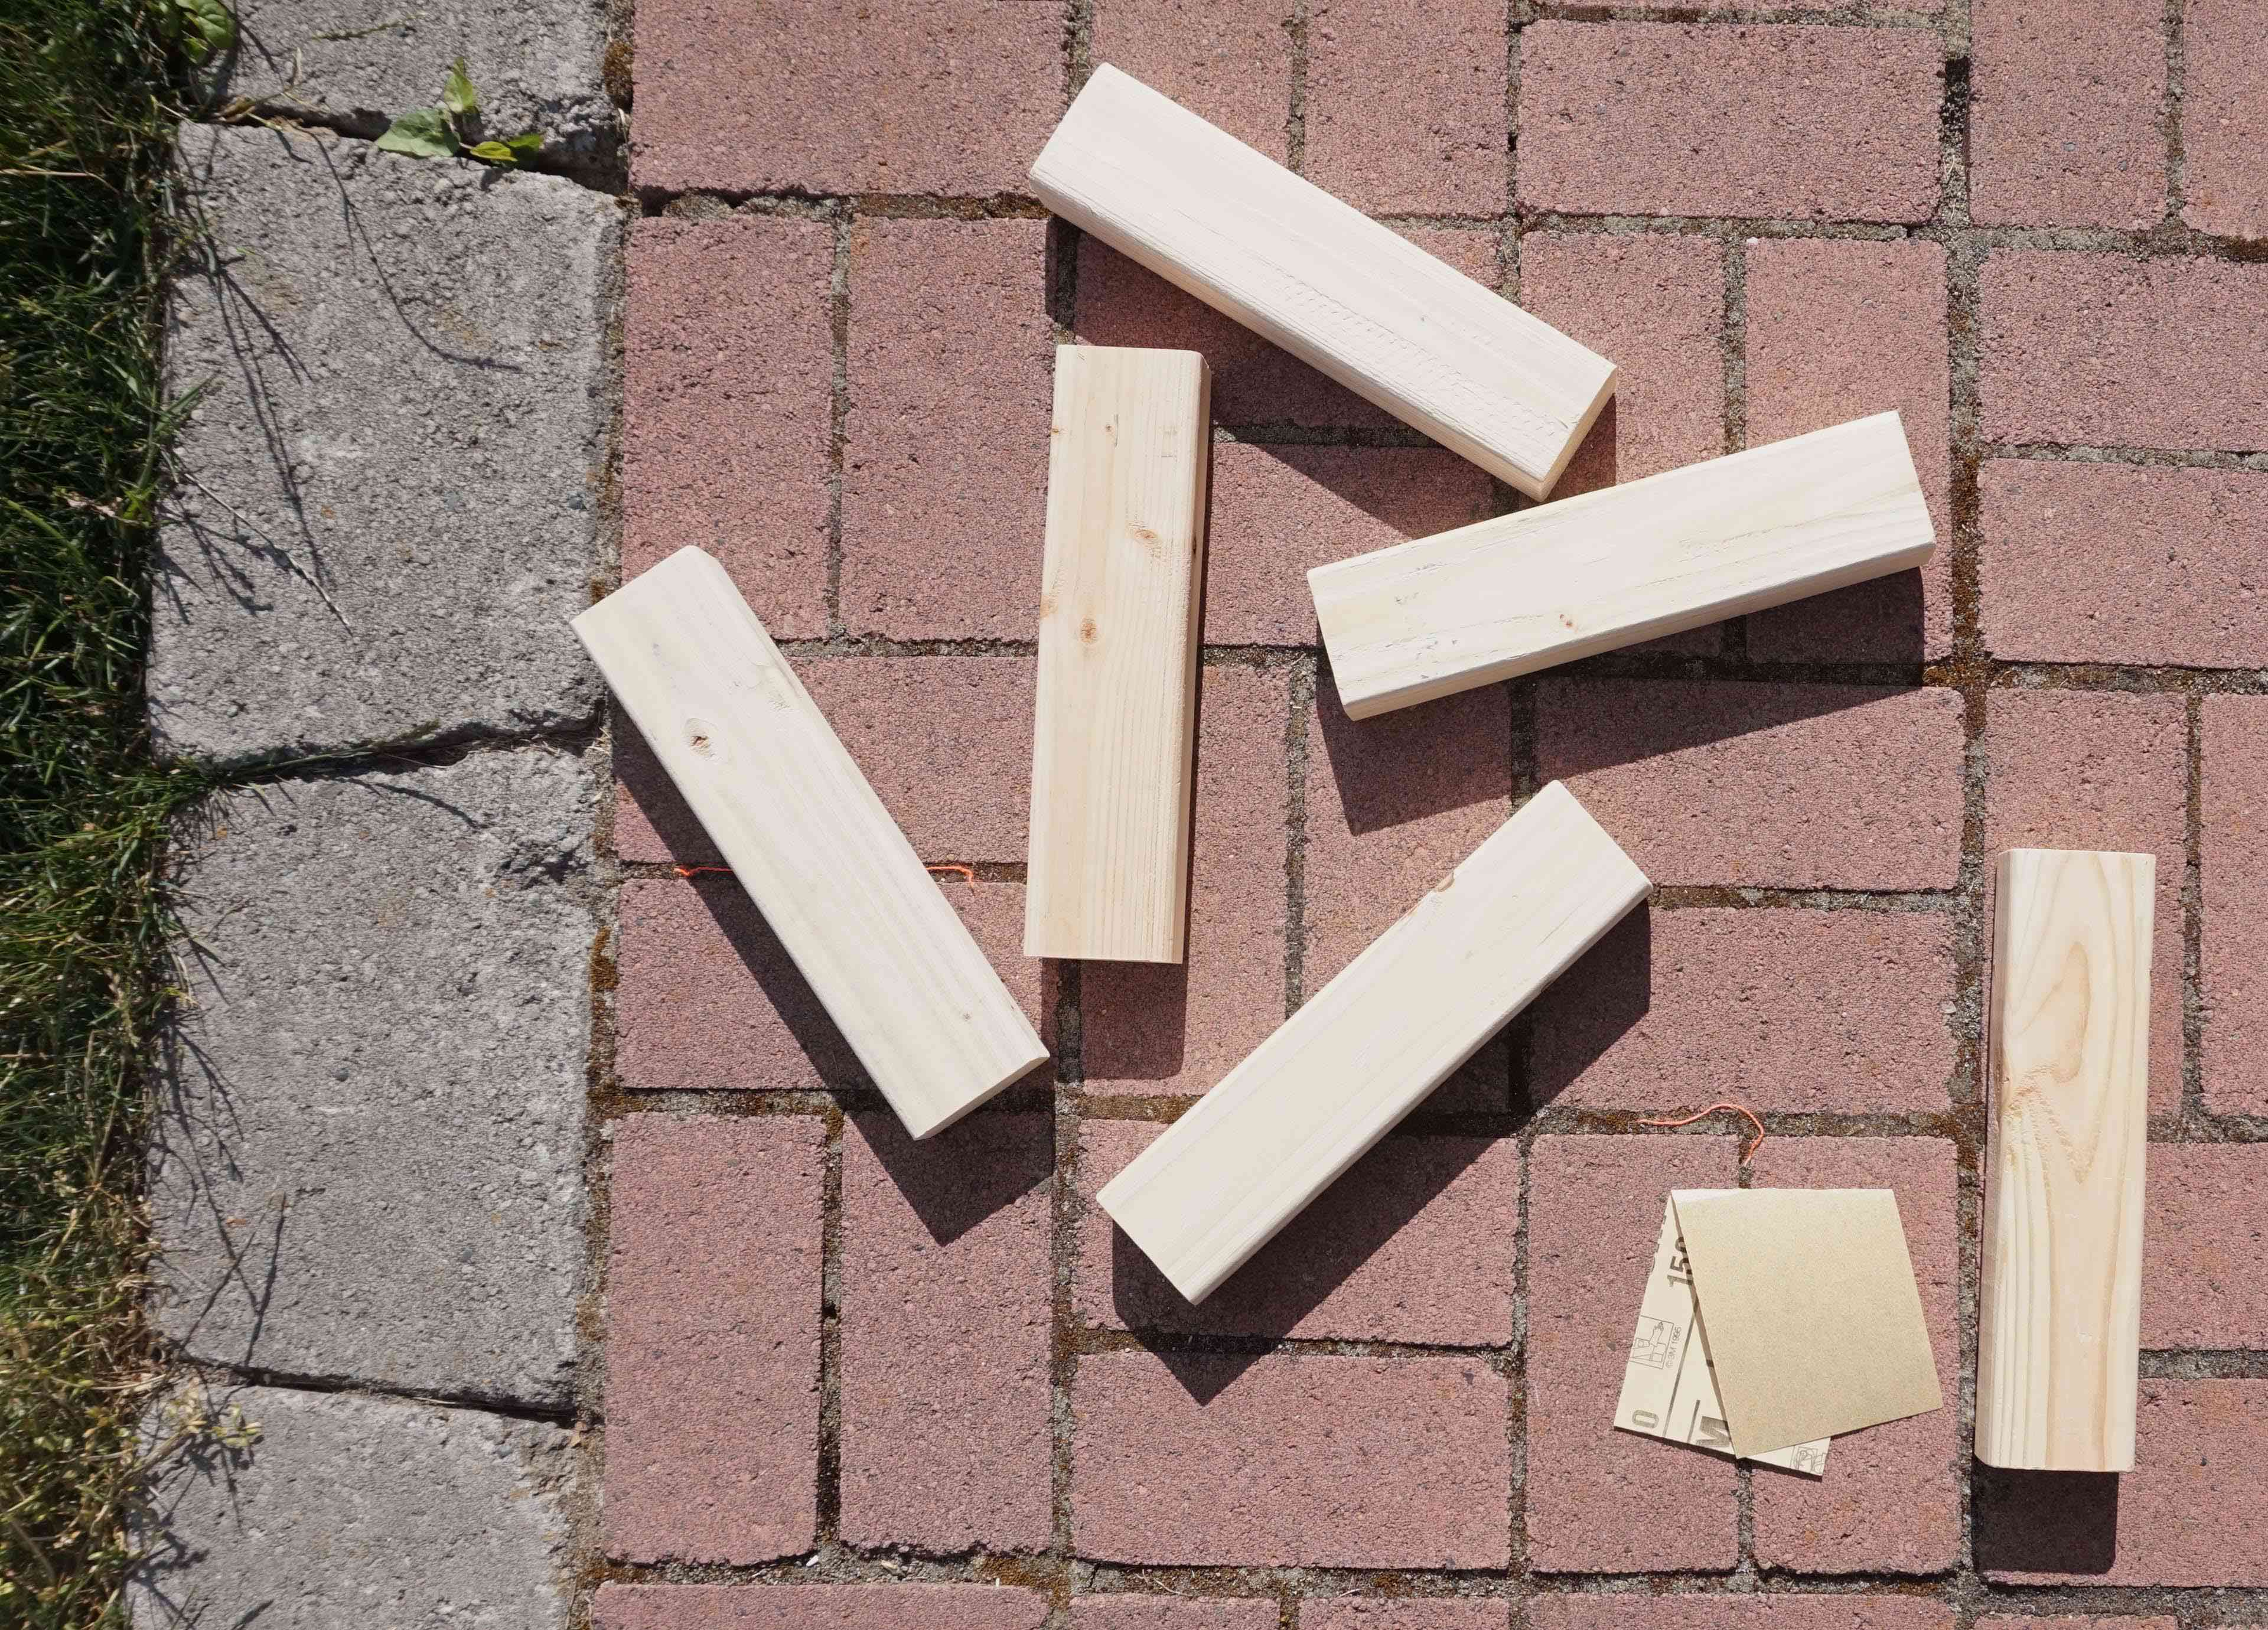 Wooden blocks on a patio next to sandpaper